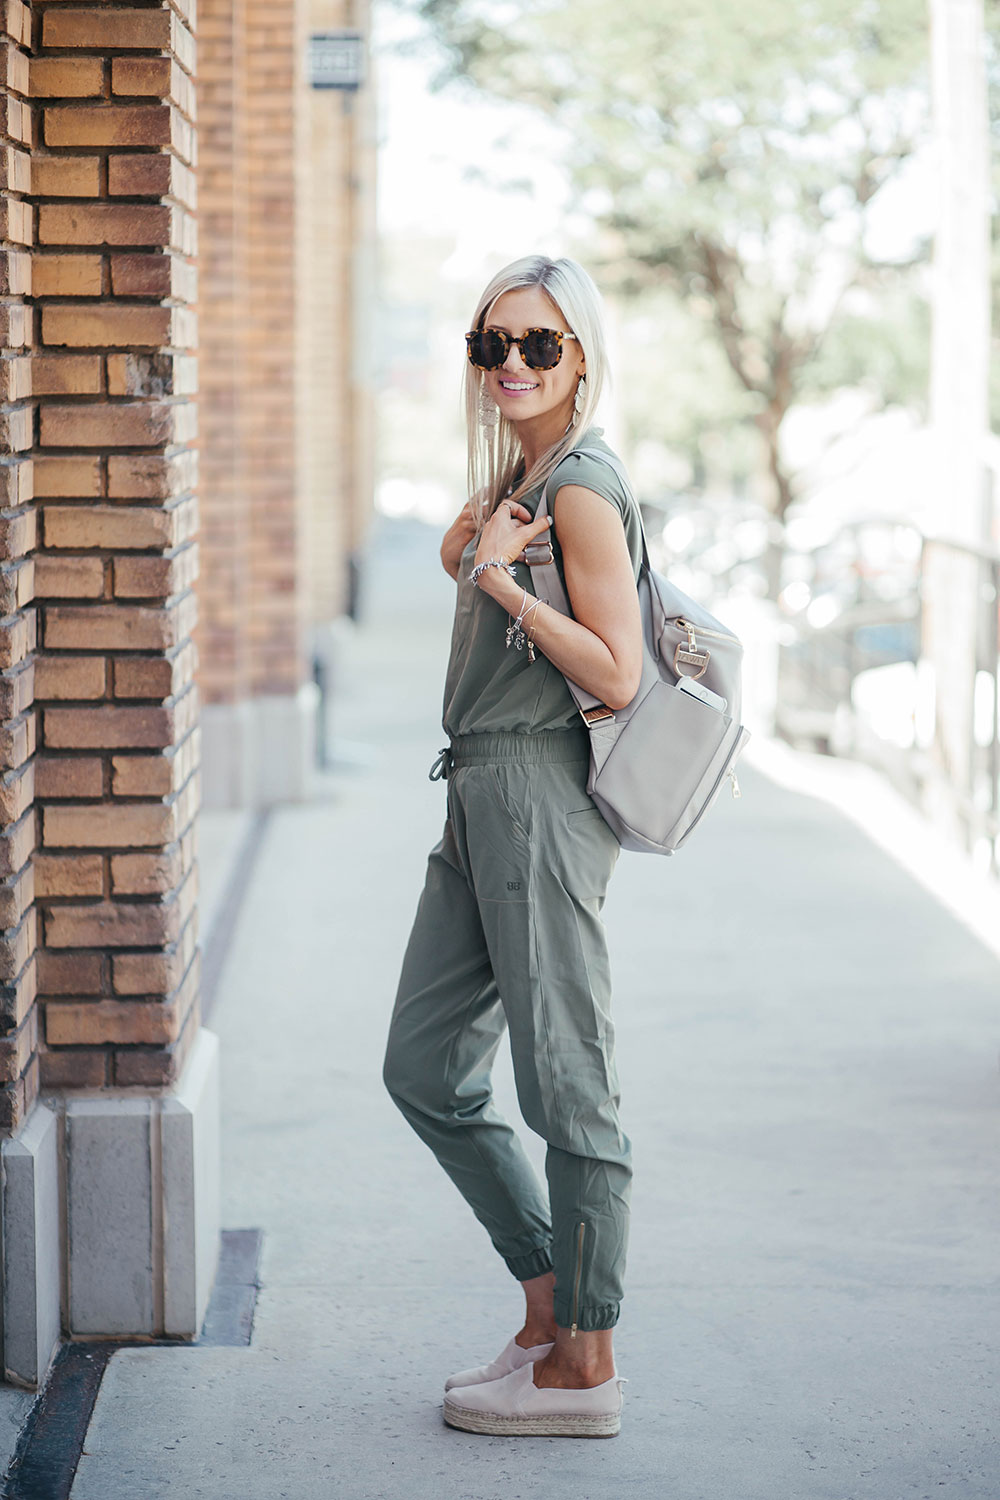 How to wear a jumpsuit 4 ways | summer outfit ideas | stylish mom outfits | how to style a diaper bag | Little Miss Fearless